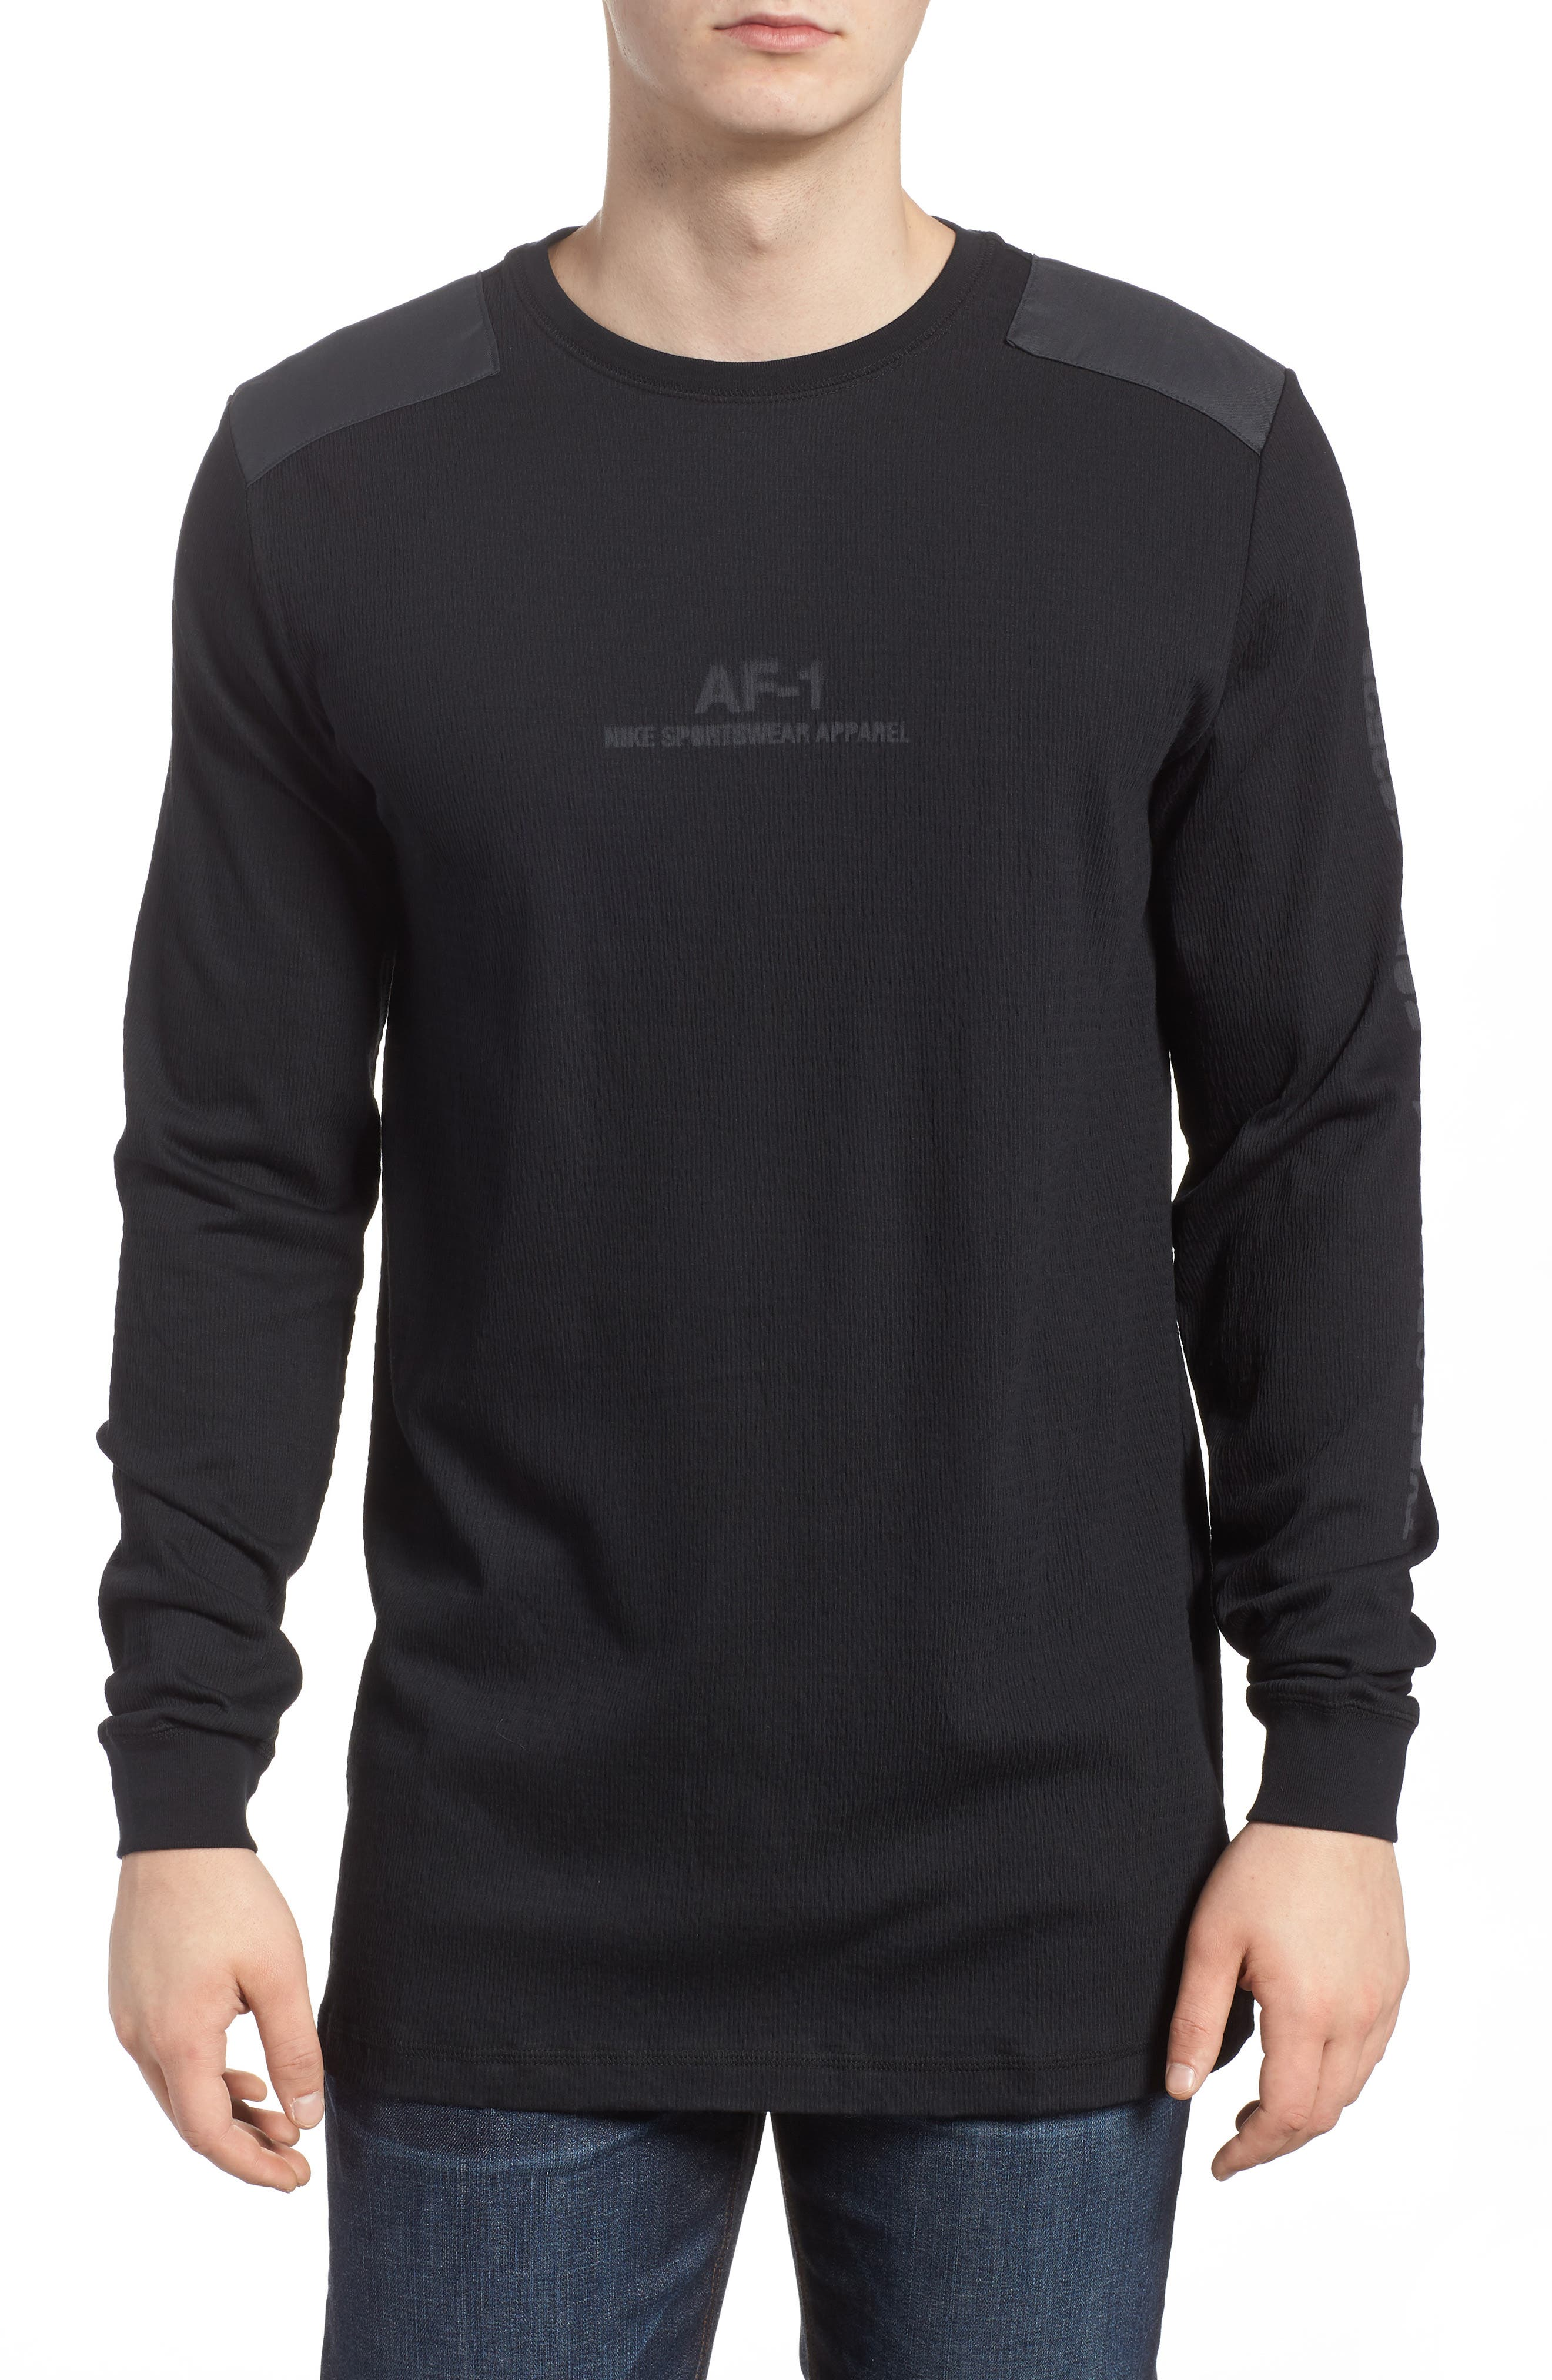 Sportswear AF-1 Long Sleeve Shirt,                             Main thumbnail 1, color,                             010